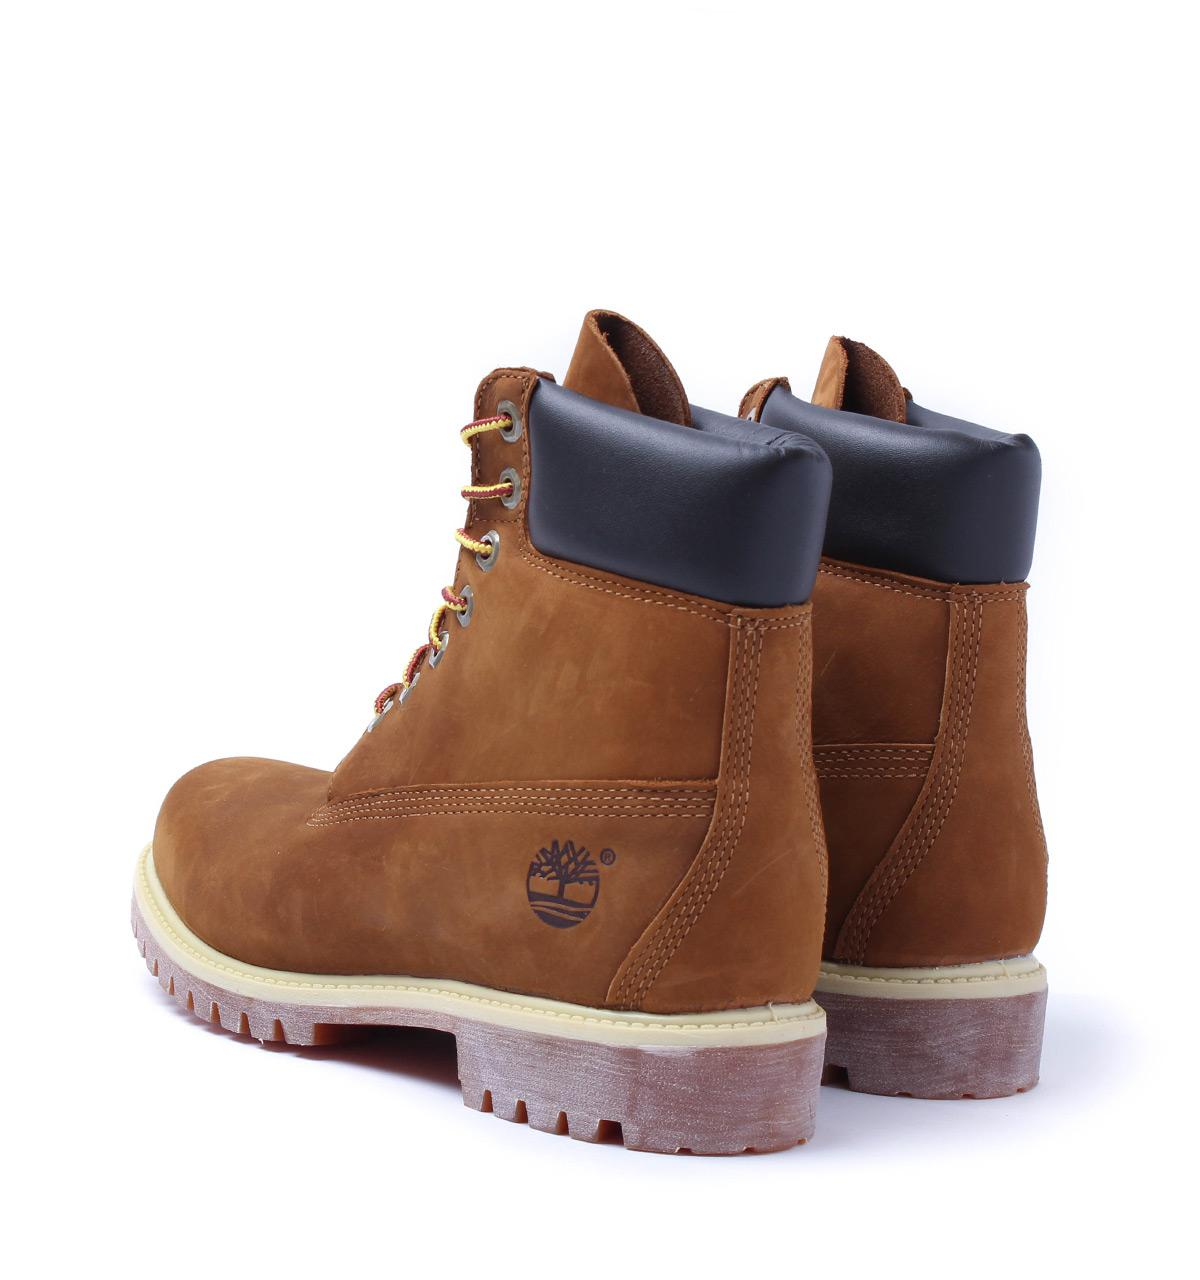 Rust Lace Up Shoes